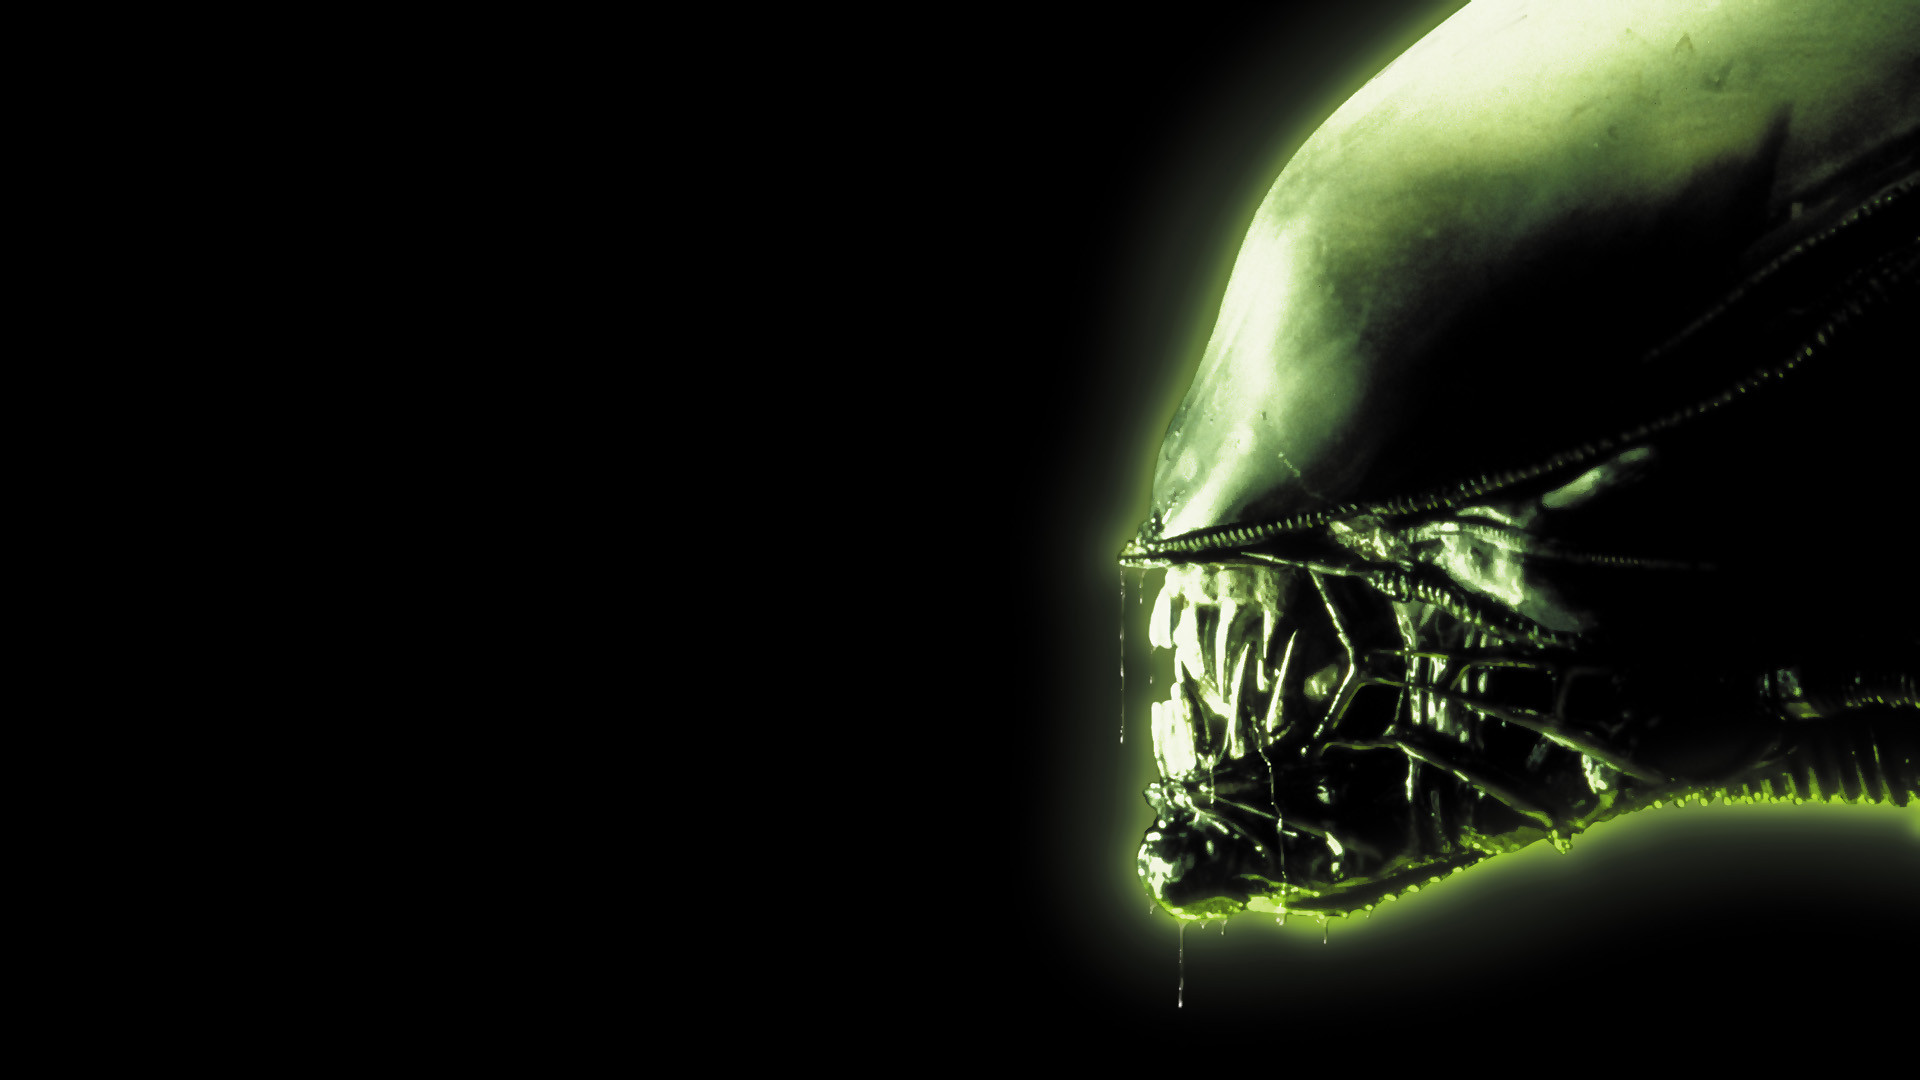 My Wallpaper Place Alien Hd Wallpaper 1920x1080